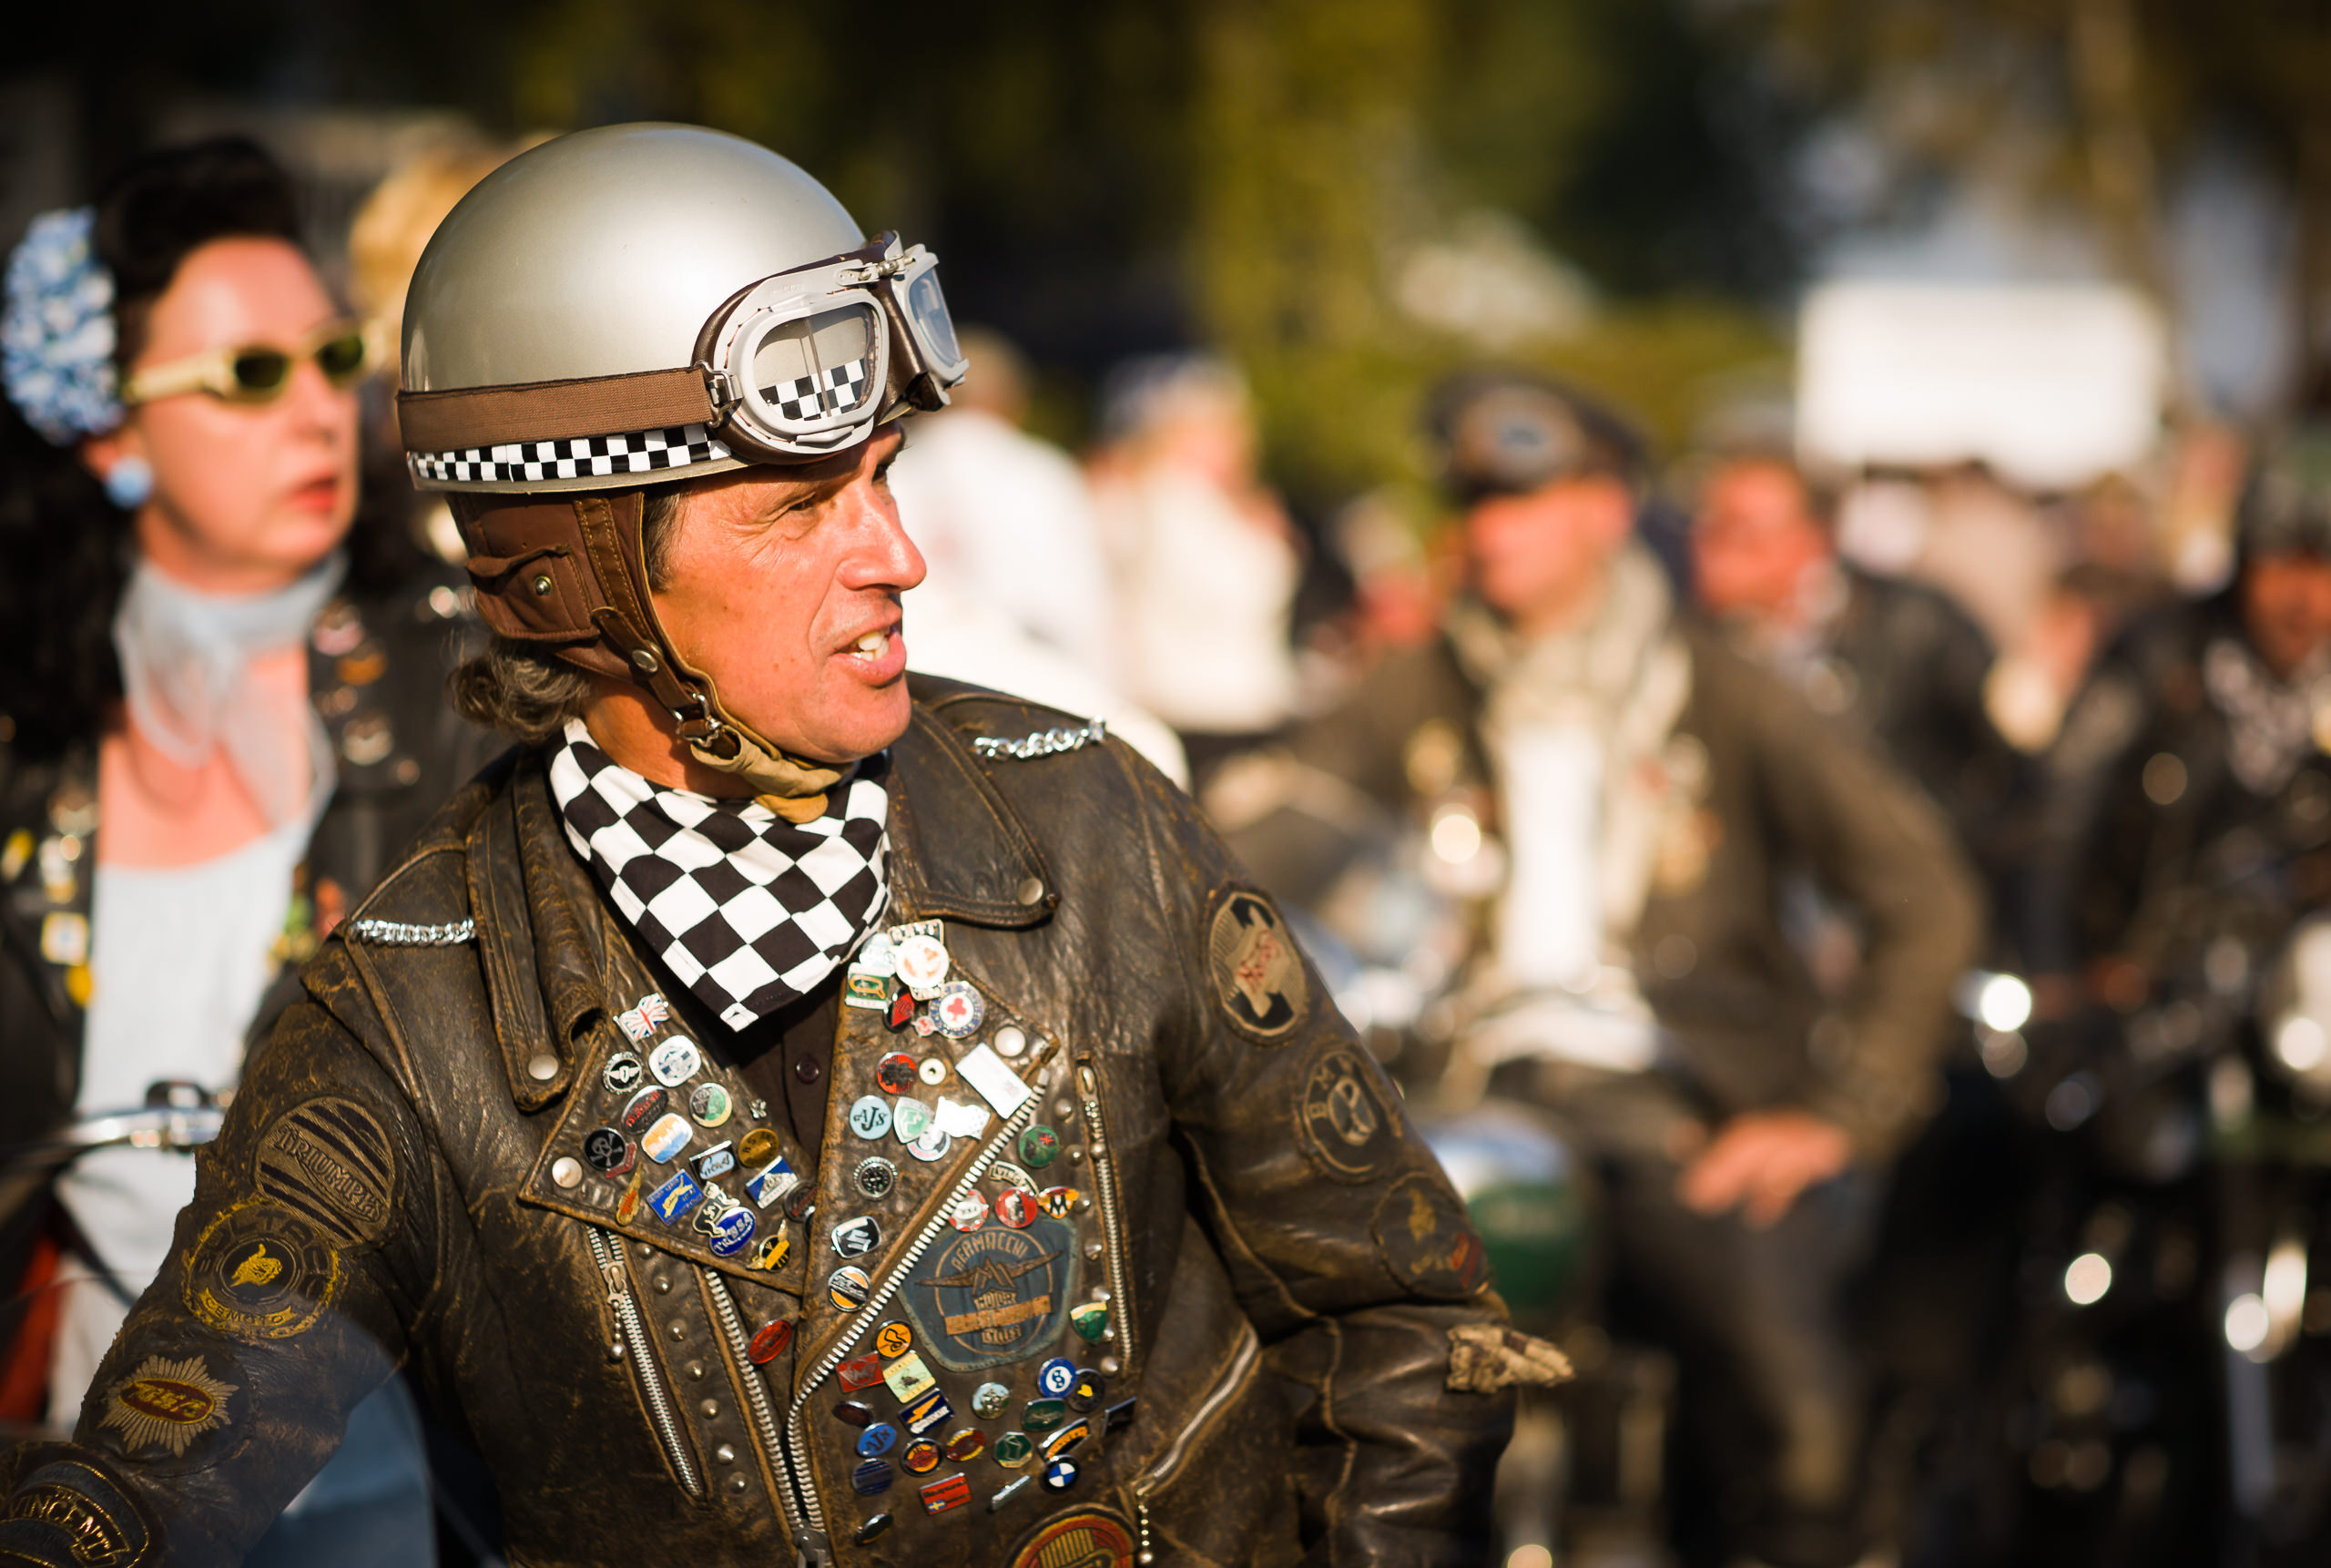 Wayfinder Workshop Goodwood Revival 75Mm Summicron Motor Cyclist By Brett Leica Photographer